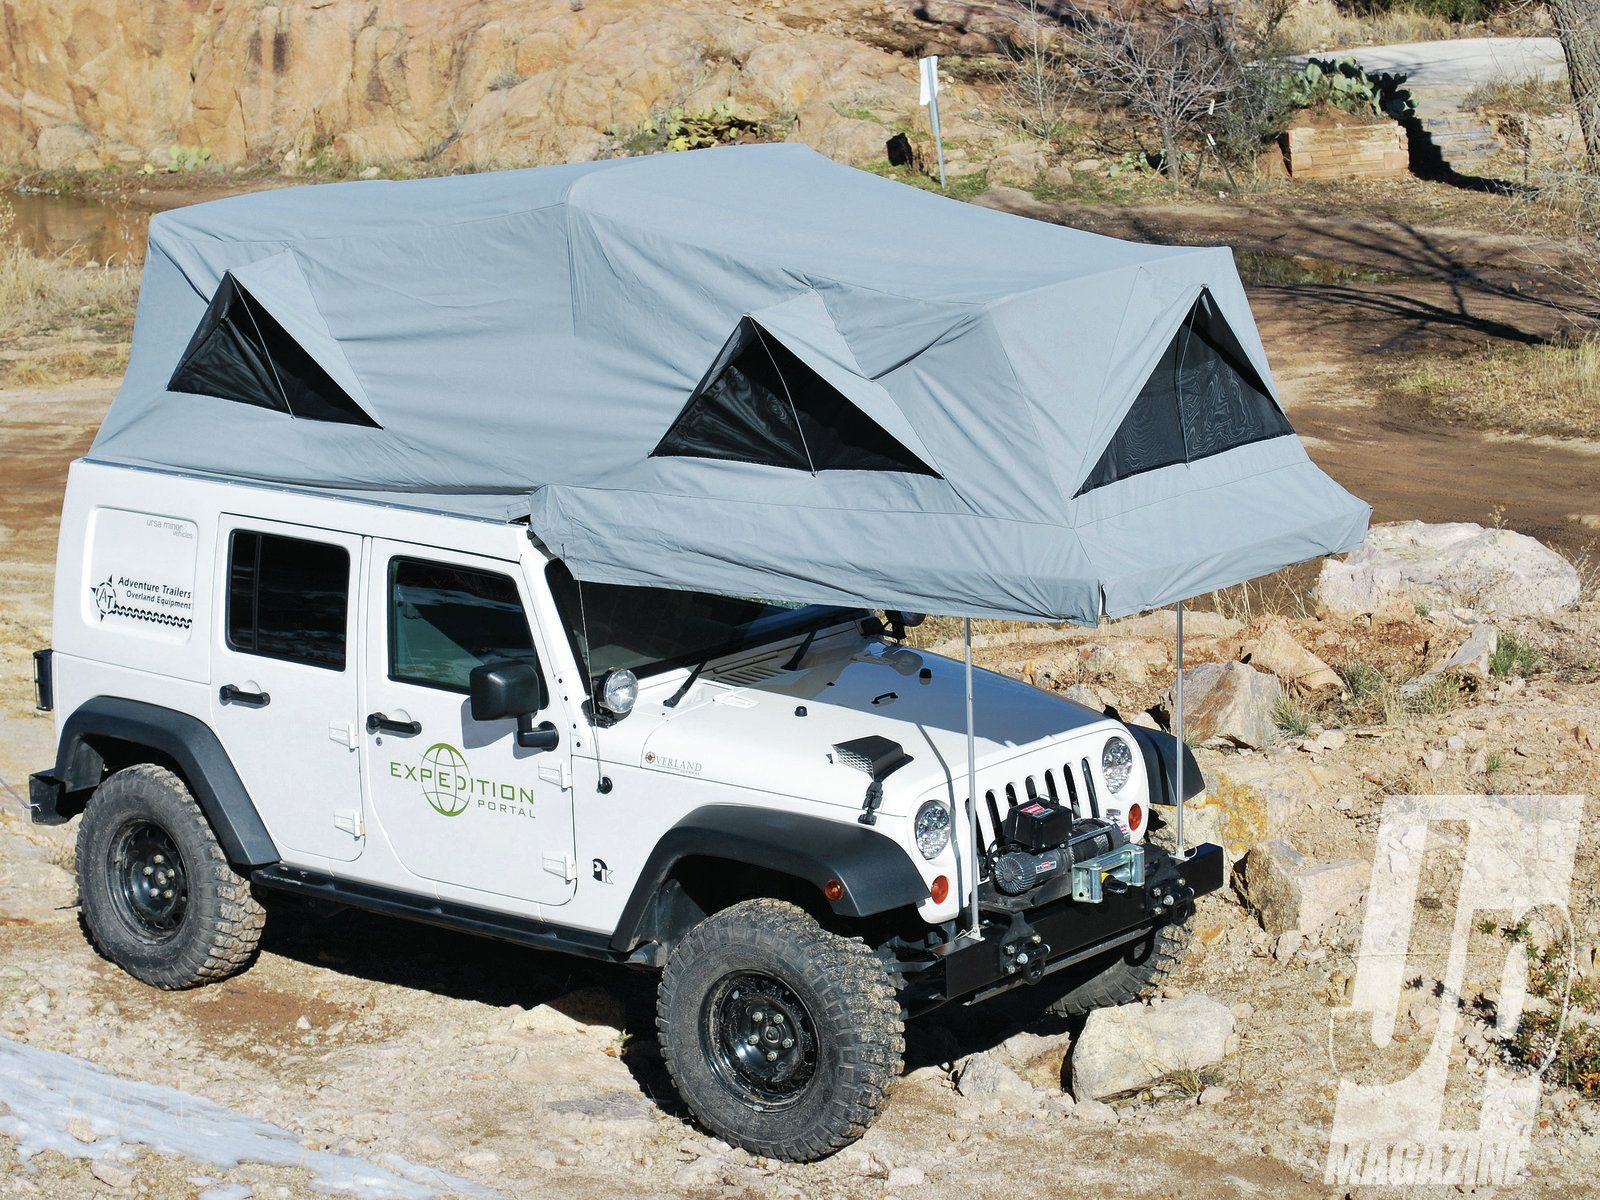 Camping Gear Clip Art Jeep Camping Jeep Accessories Jeep Wrangler